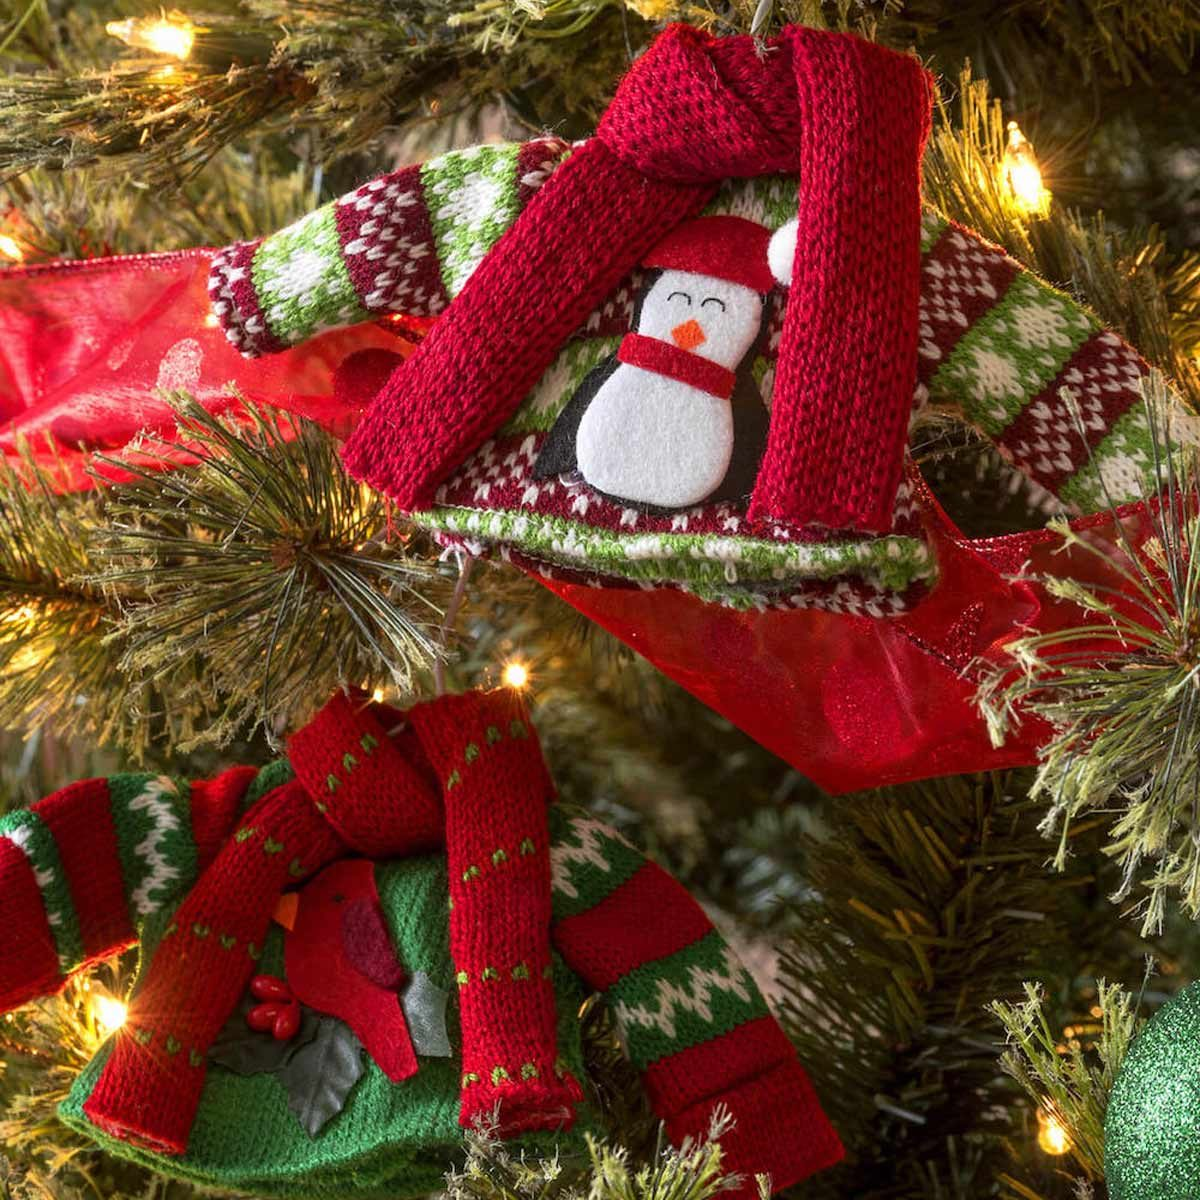 Simple Christmas Tree Decorations: Ugly Christmas Sweater